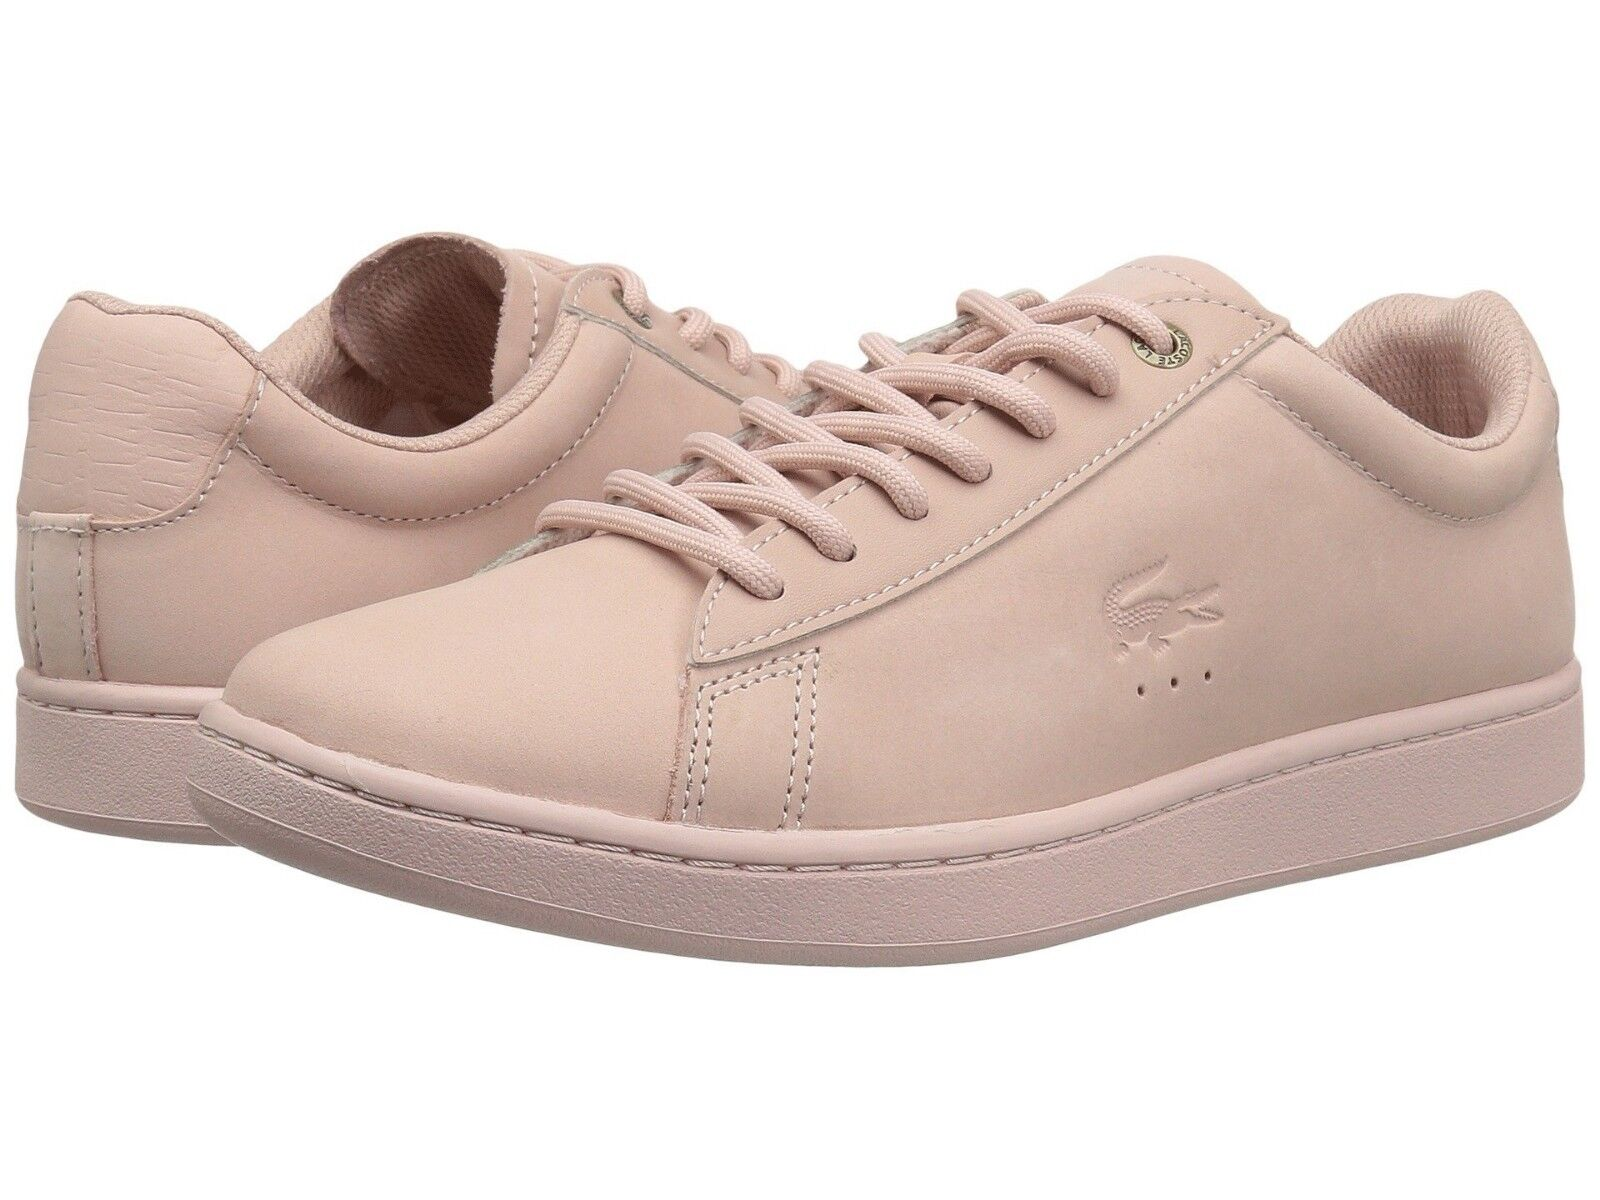 Lacoste Carnaby Evo Men's Casual Croc Logo Pink Leather  Loafer Shoes Sneakers